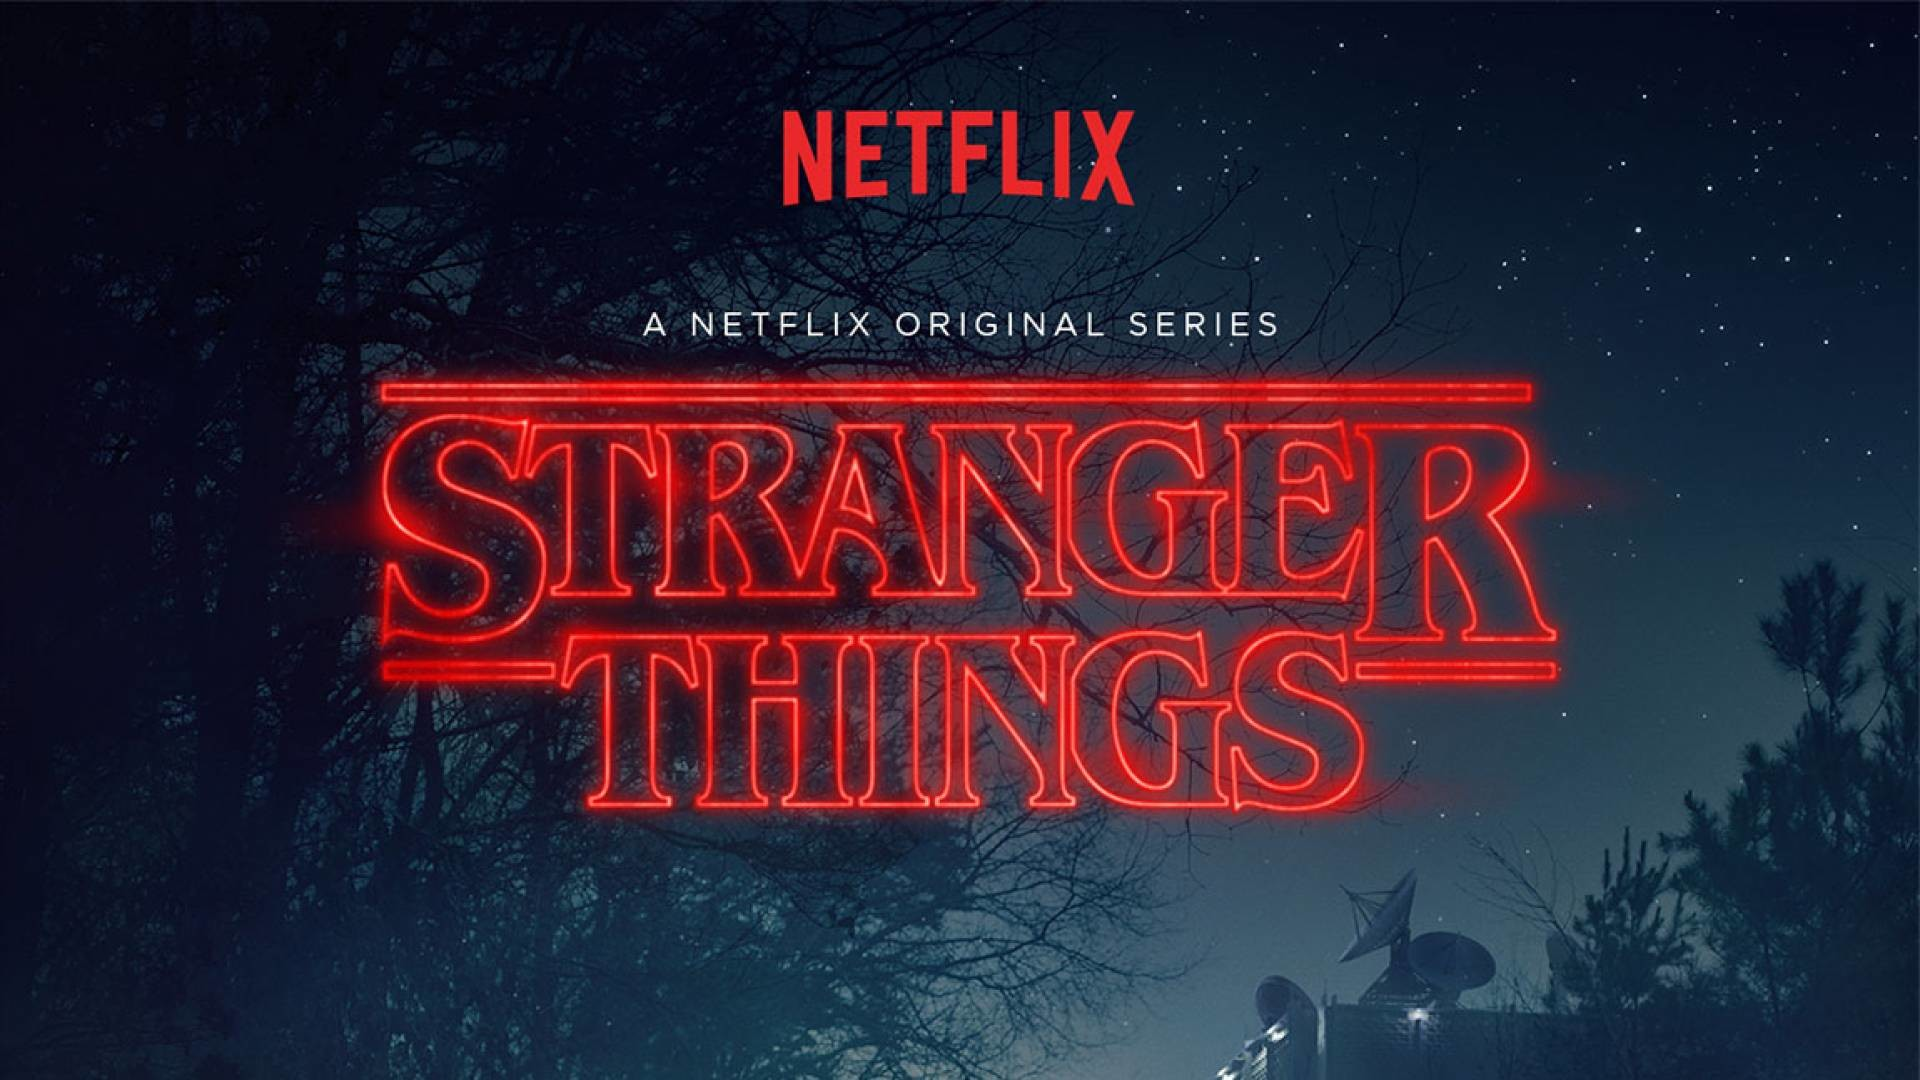 Netflix Wallpapers (70+ images)